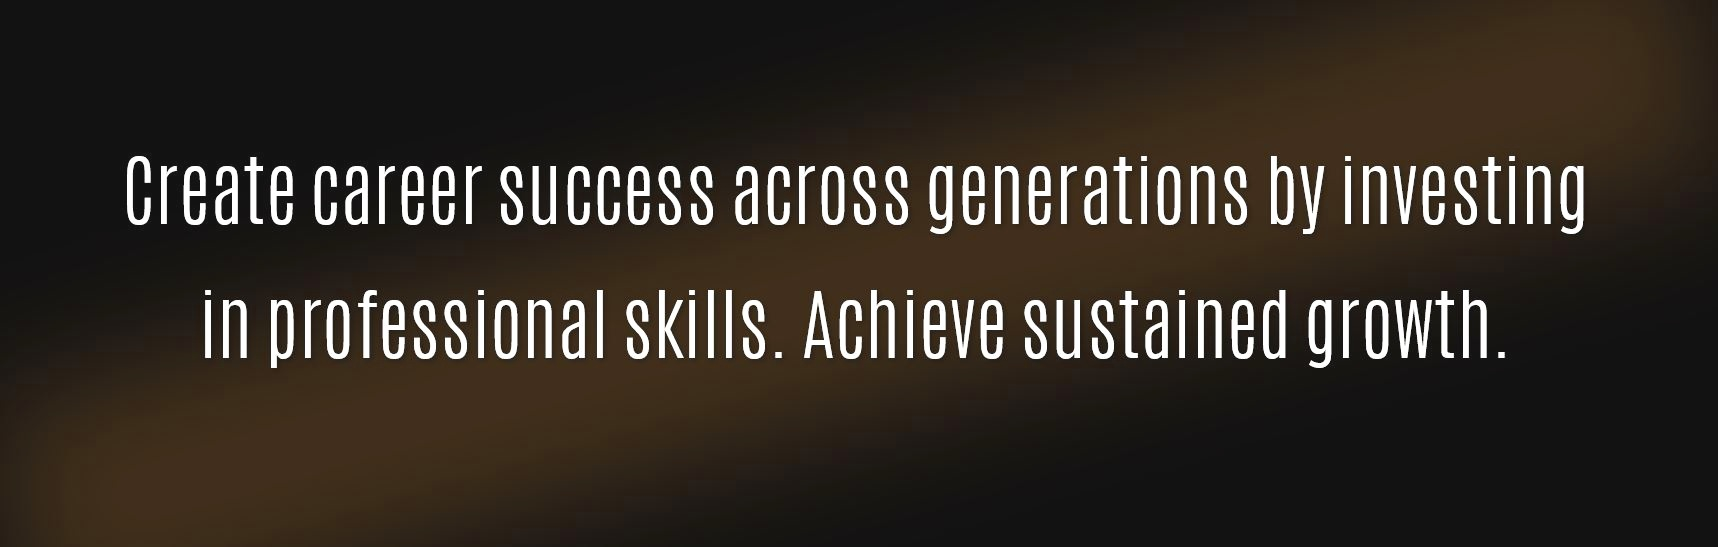 Create career success across generations by investing in professional skills. Achieve sustained growth - Career, Success, Skill